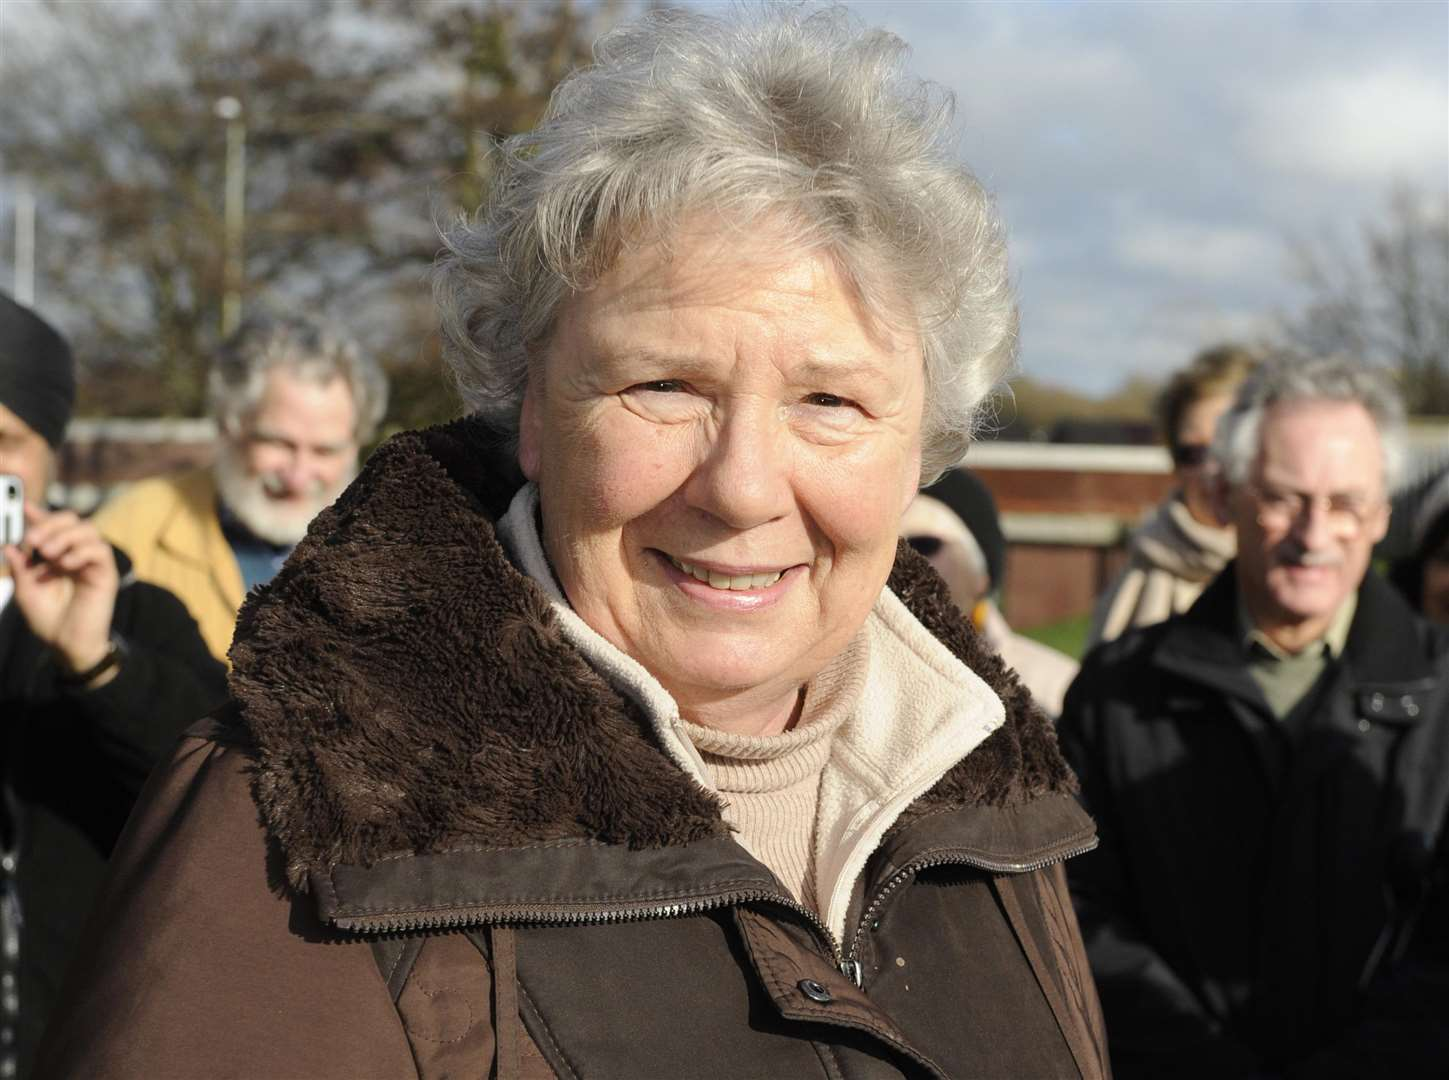 Canterbury resident and campaigner Sue Langdown